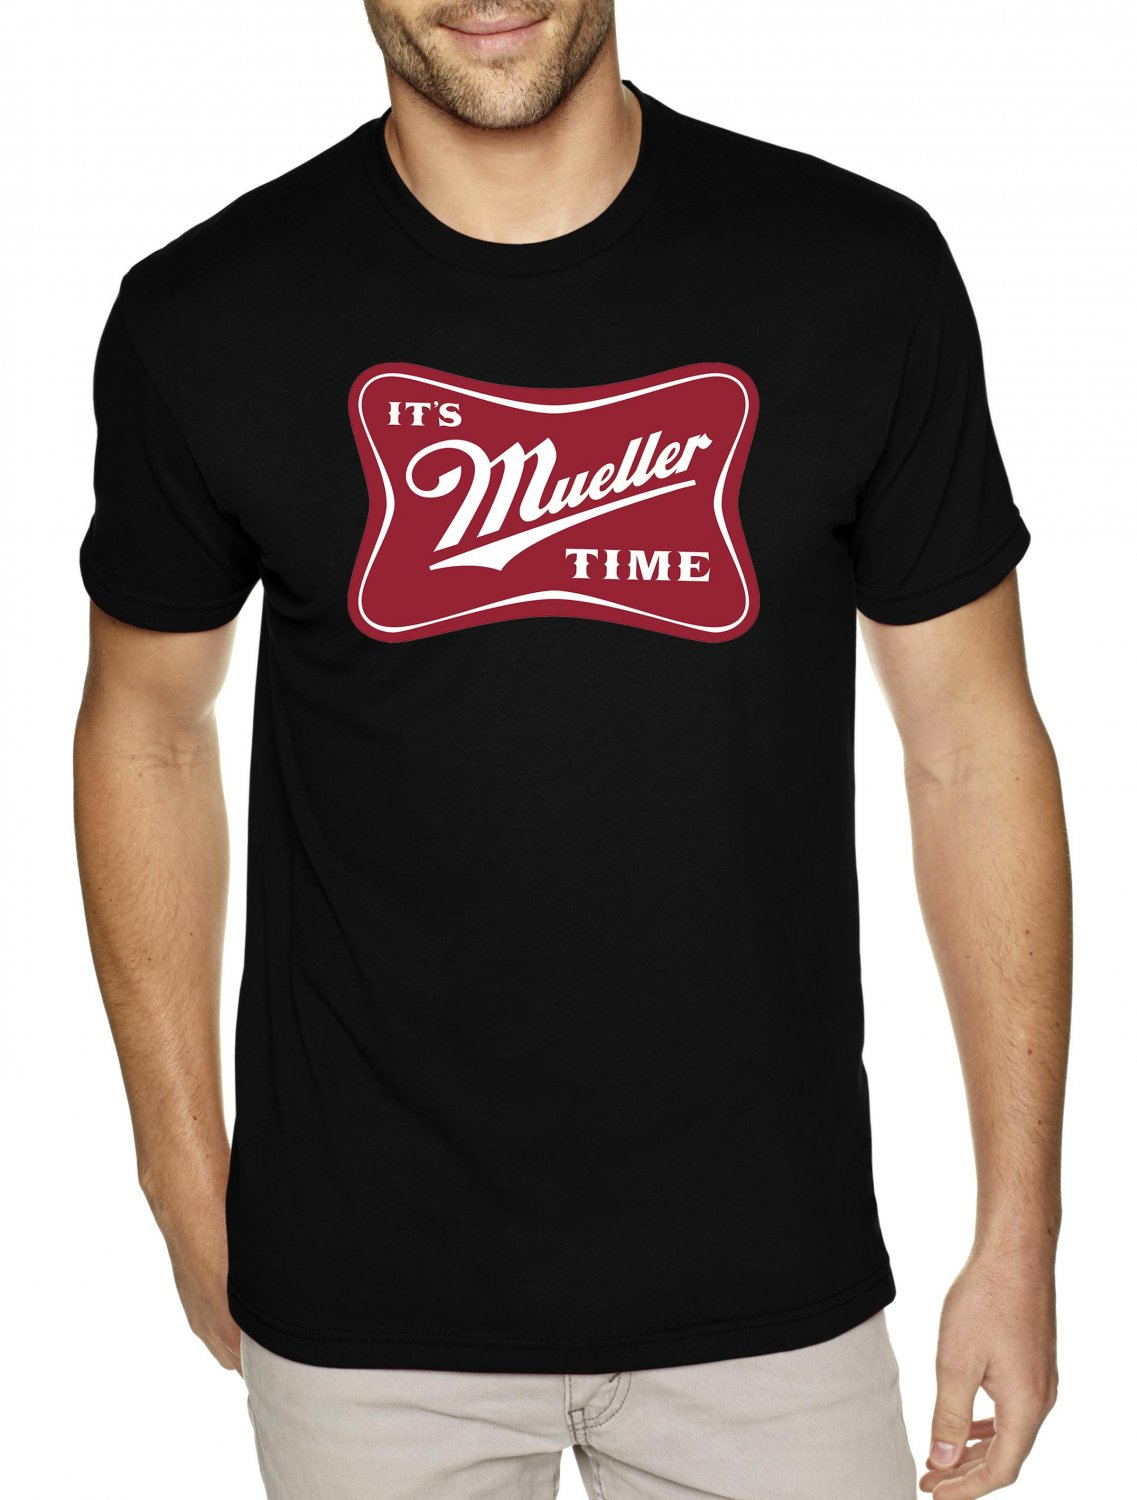 IT'S MUELLER TIME shirt - Premium Sueded Shirt SIZE 3XL